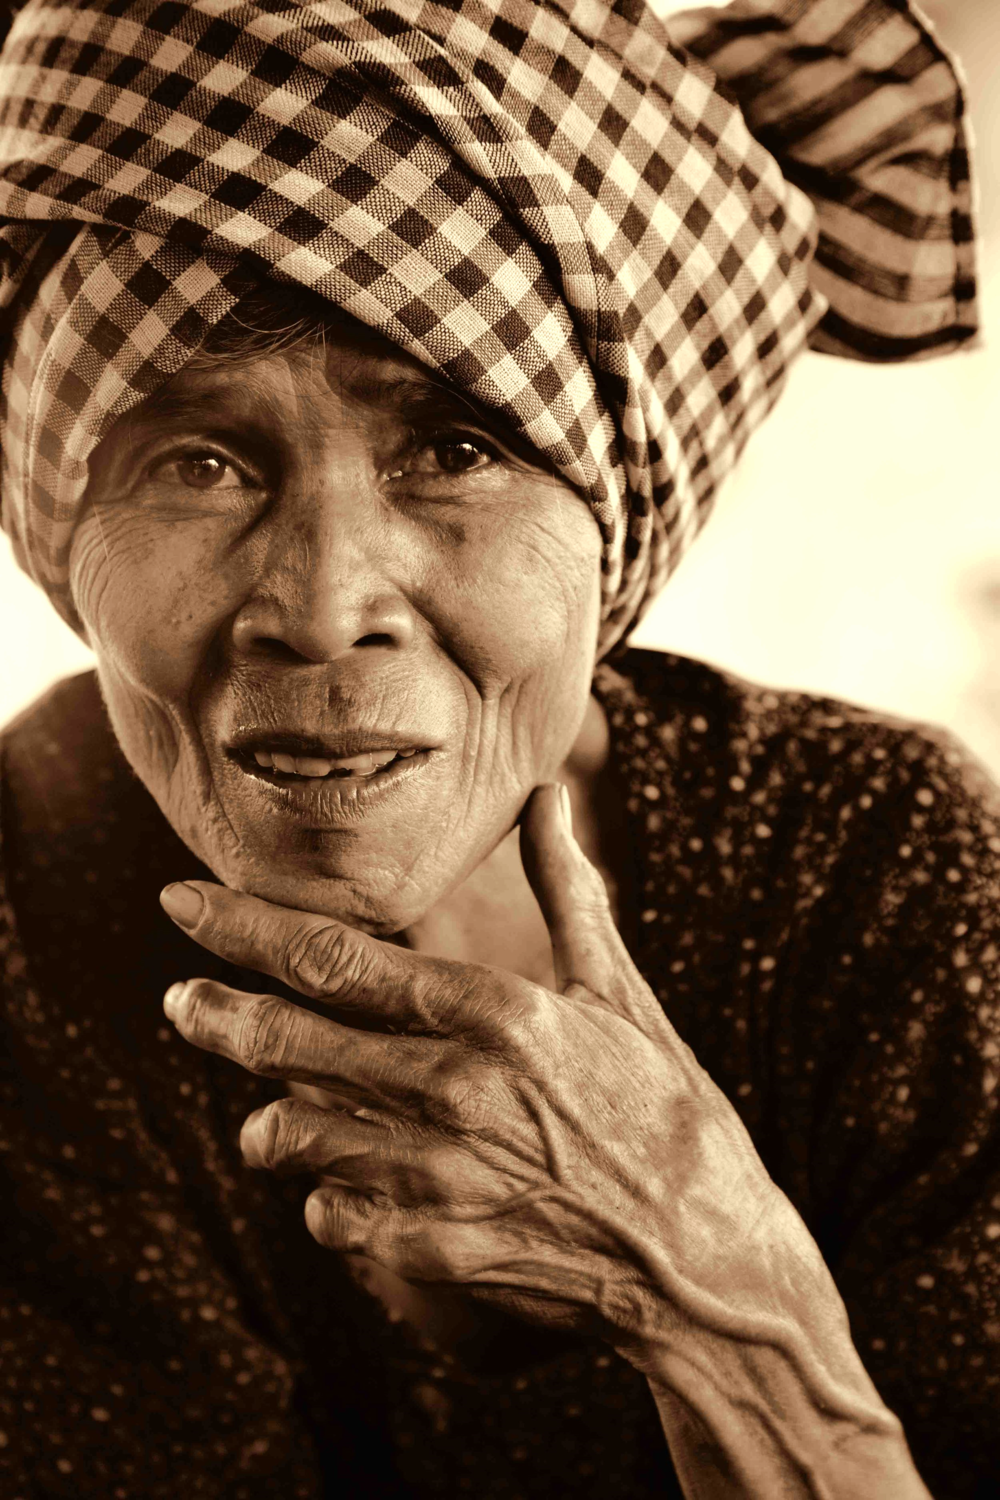 Elderly woman from Ratanakiri Province, Cambodia